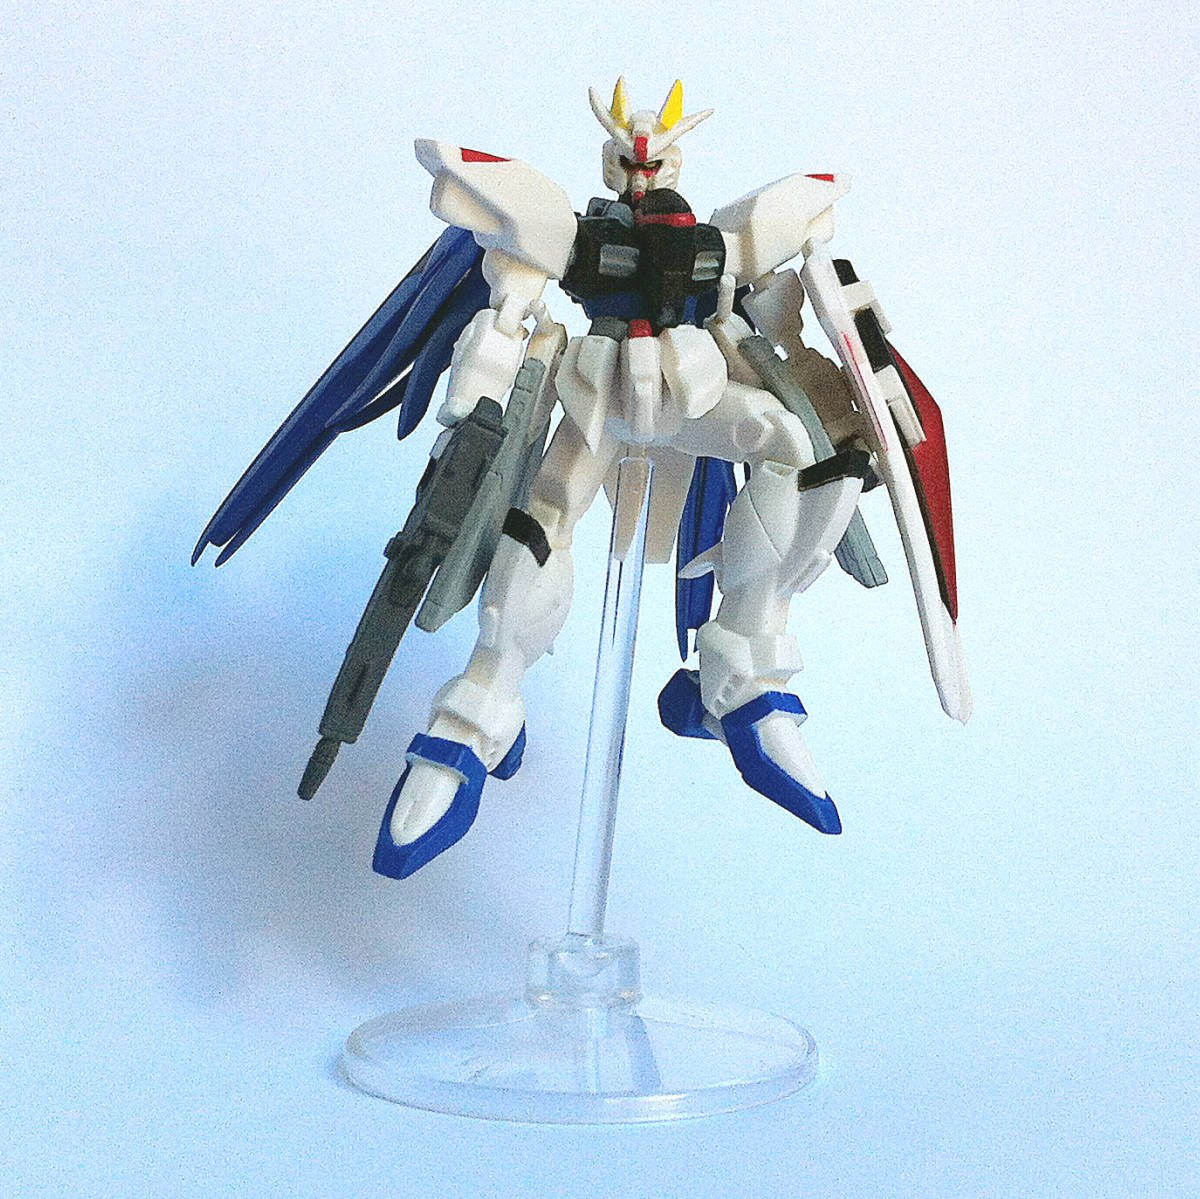 ZGMF-X10A Freedom Gundam from HG Gundam MS Selection by Bandai